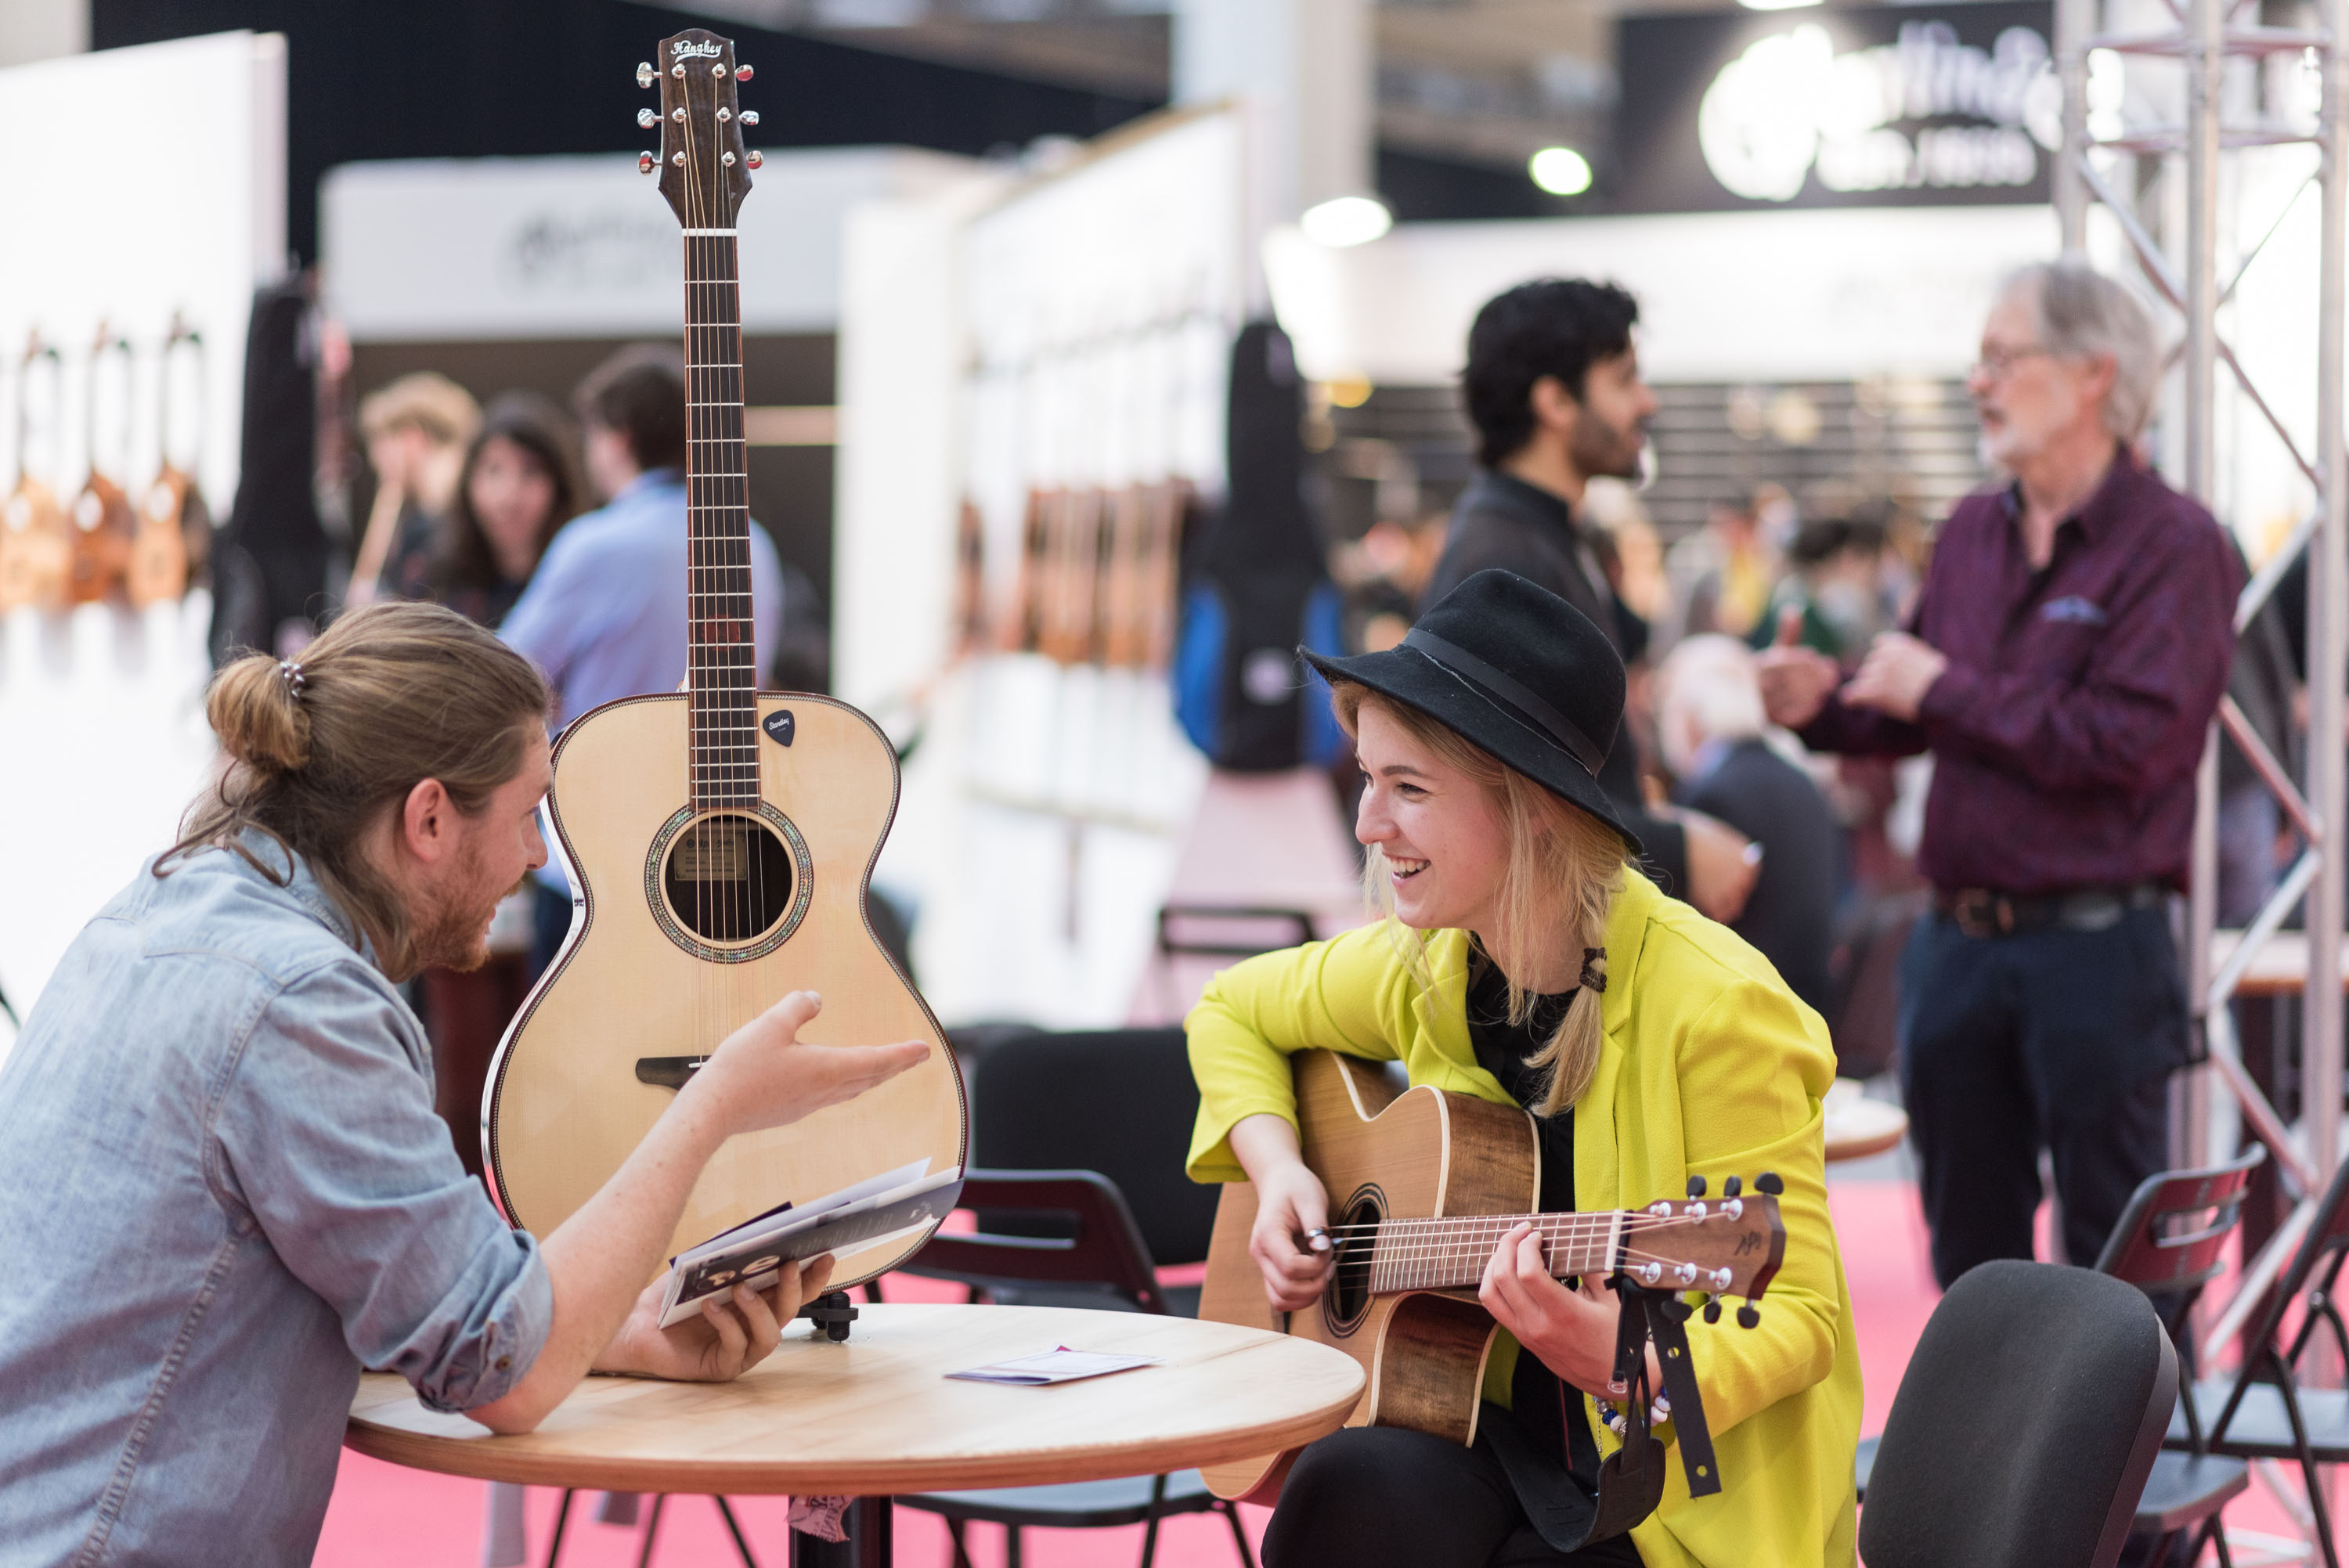 Visitors with guitars at the Musikmesse